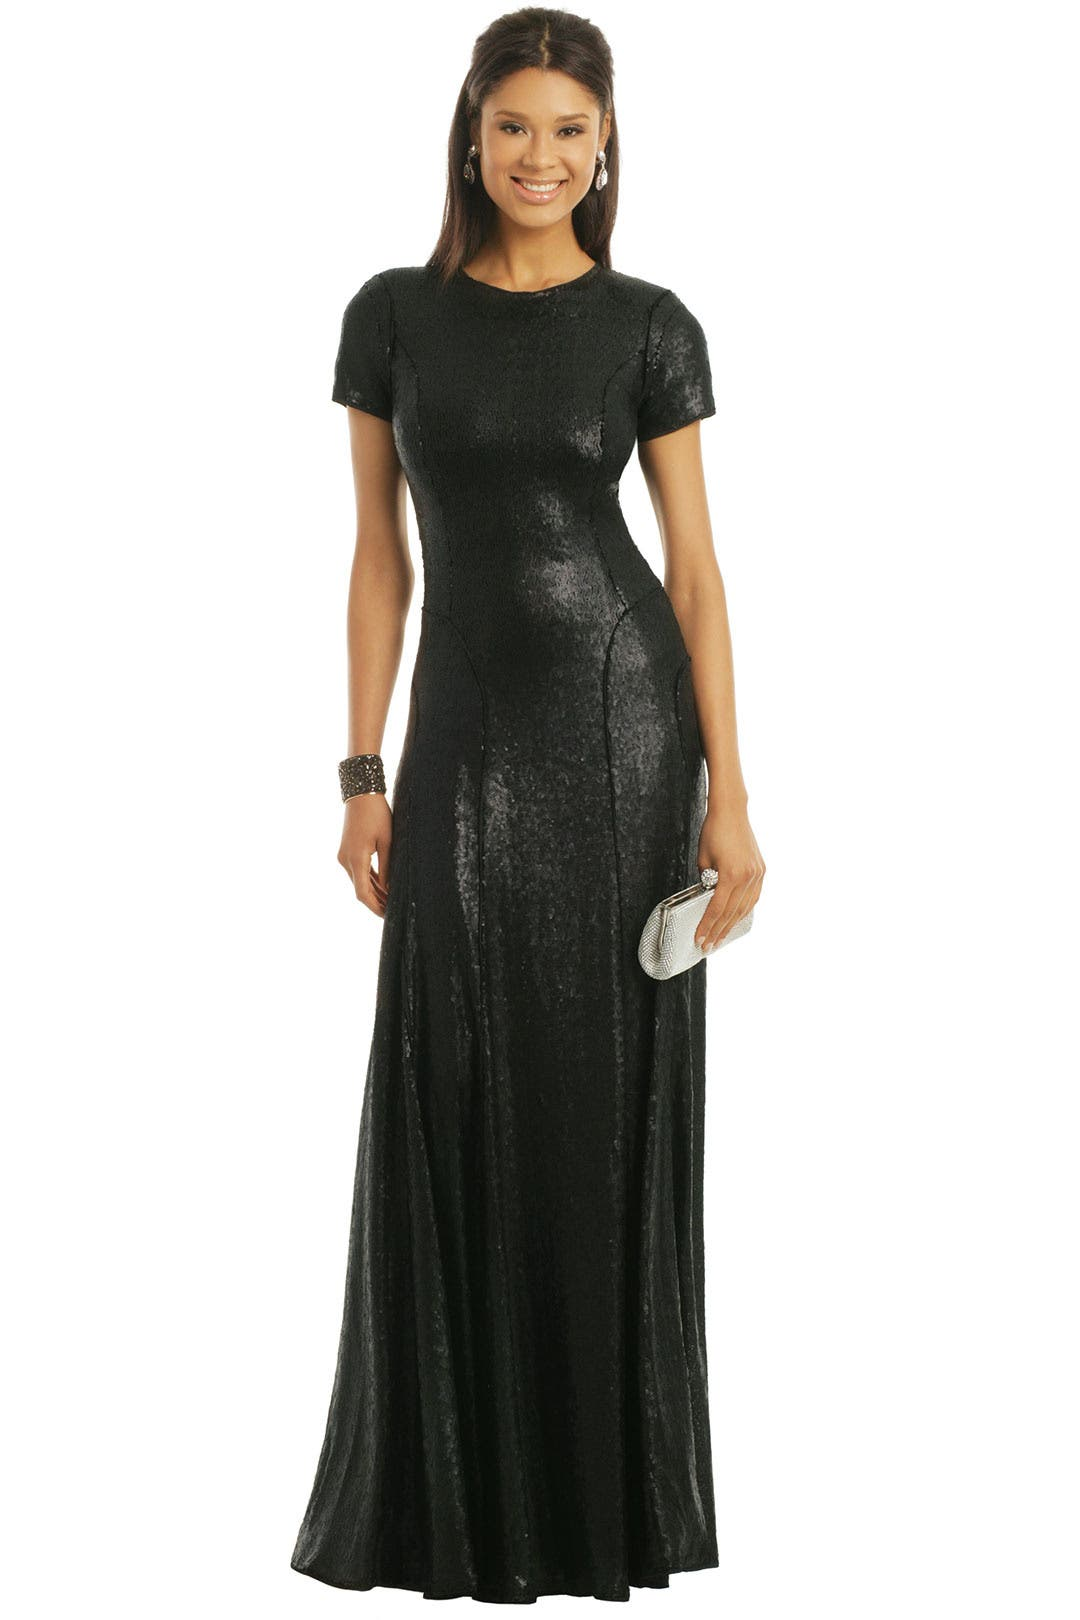 Black Liquid Gown by Carlos Miele